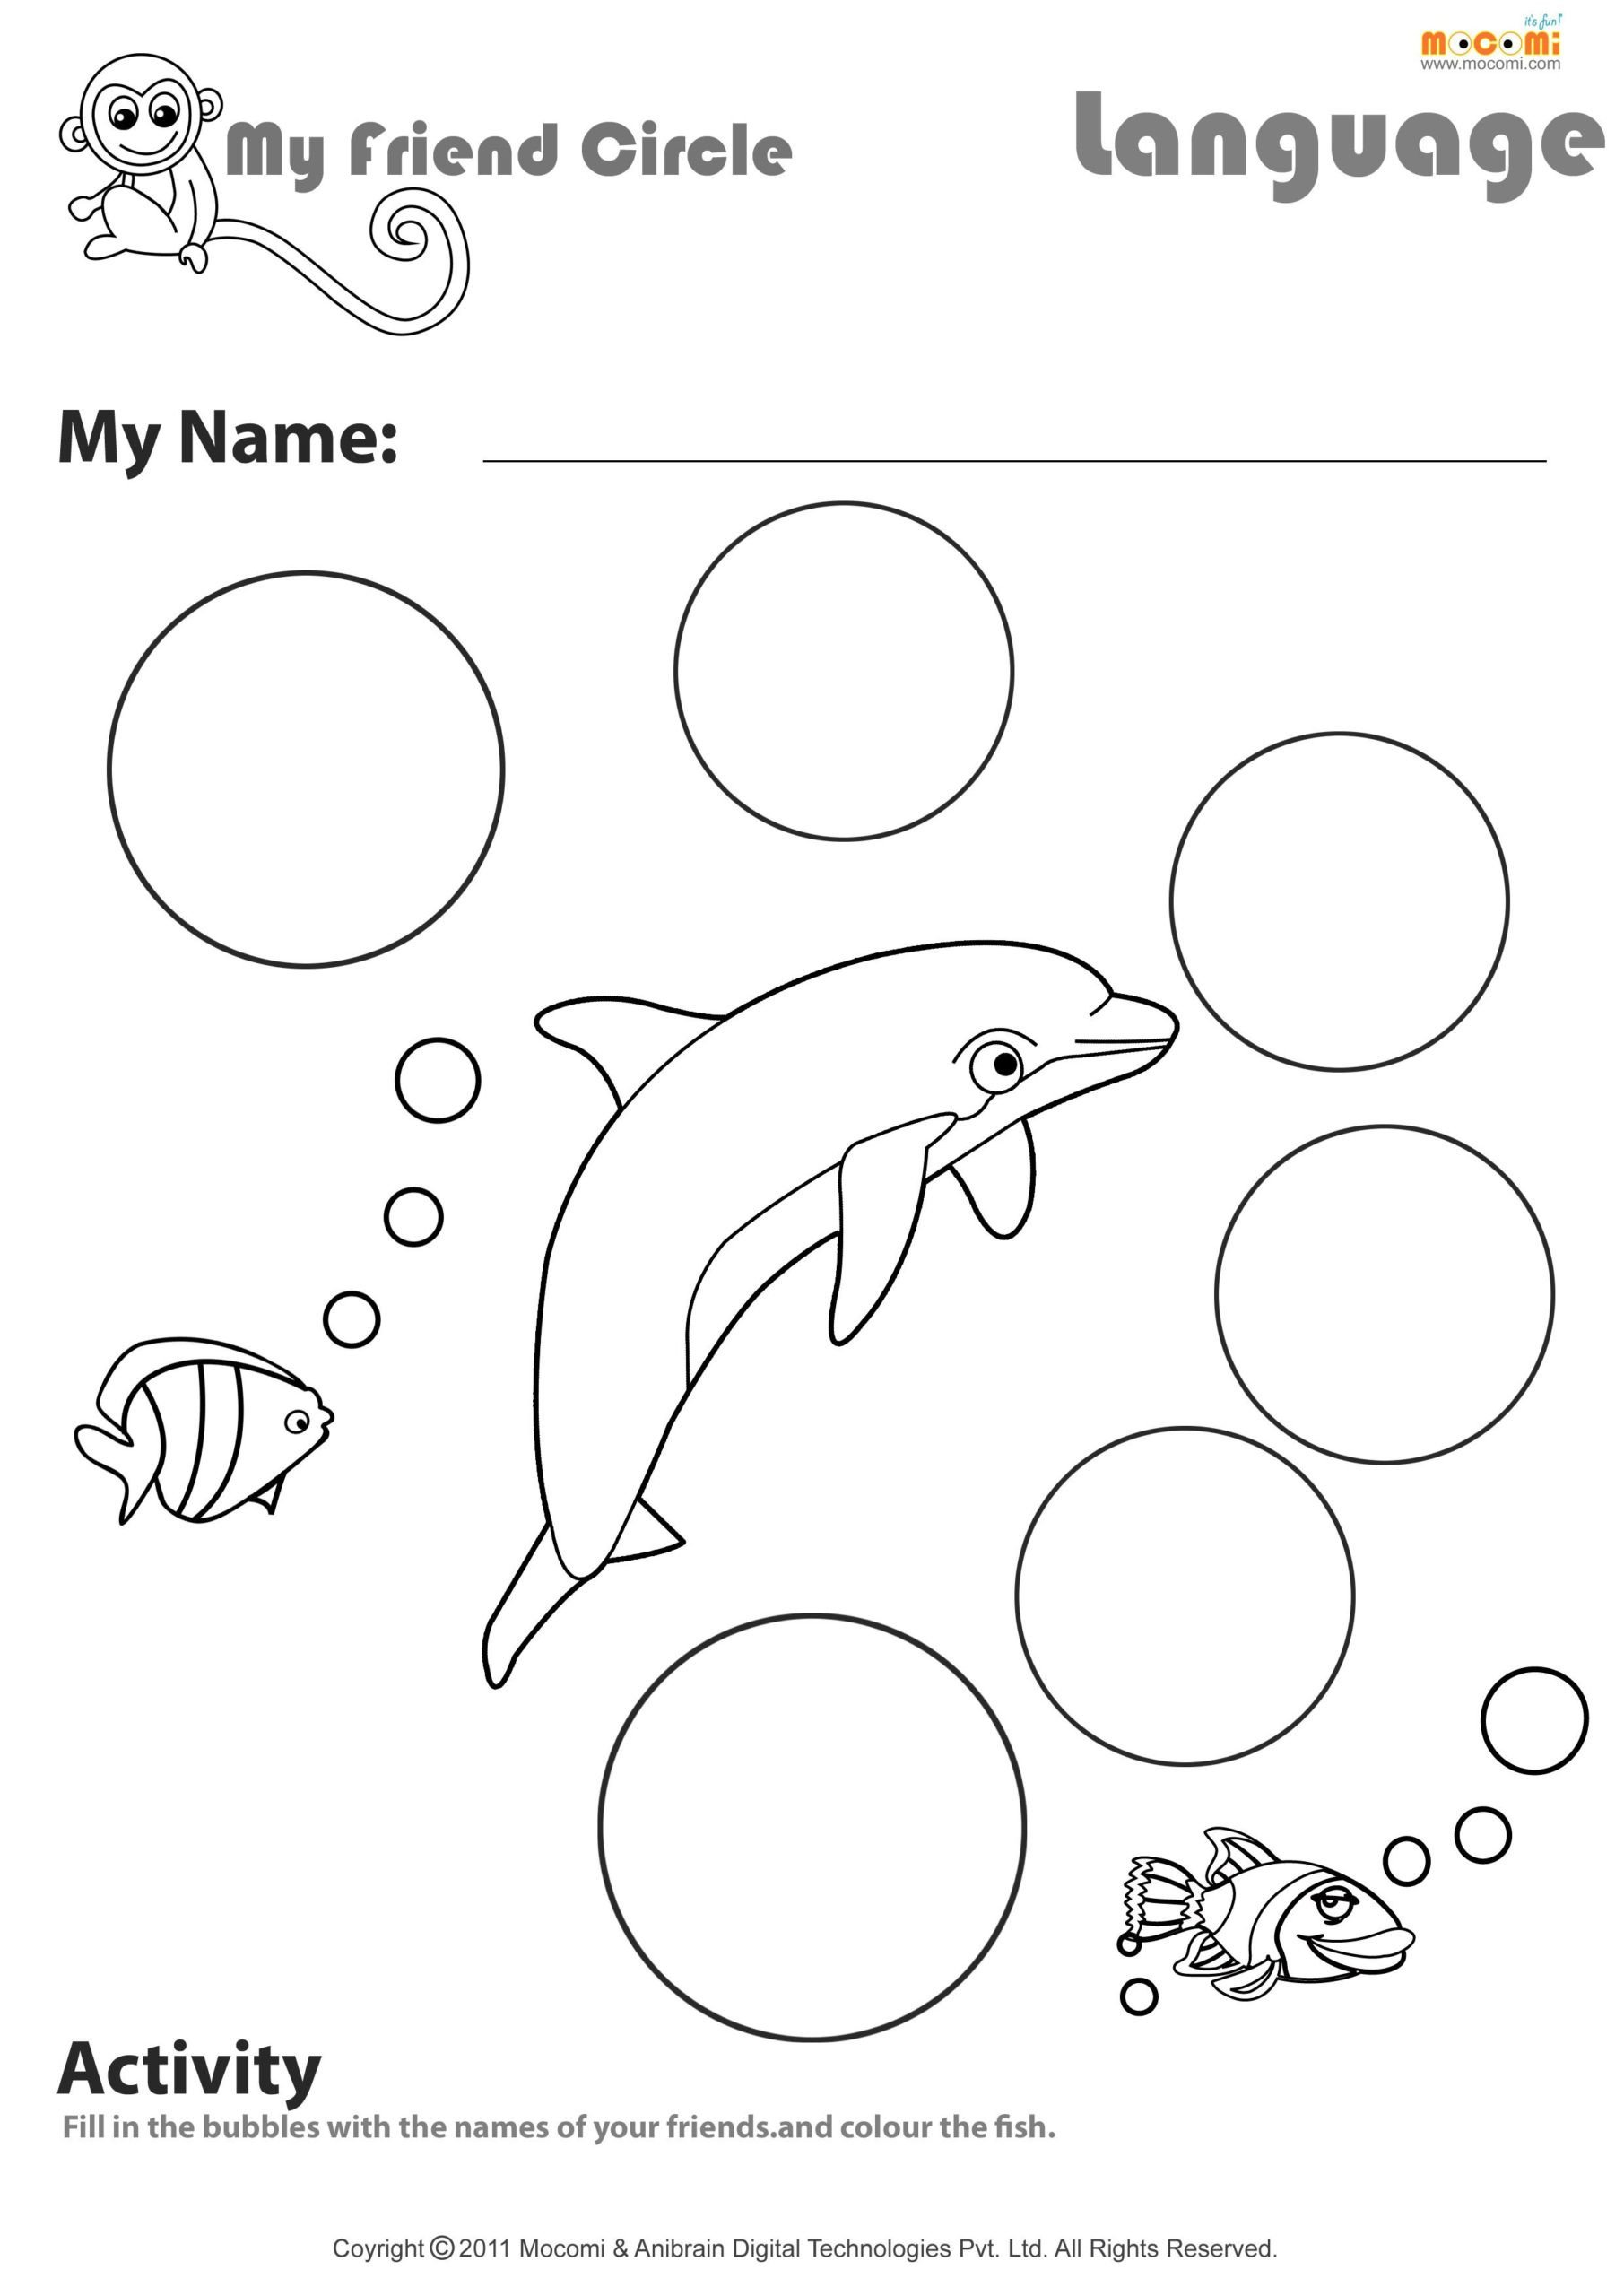 Making Friends Worksheets My Friend Circle English Worksheet for Kids with